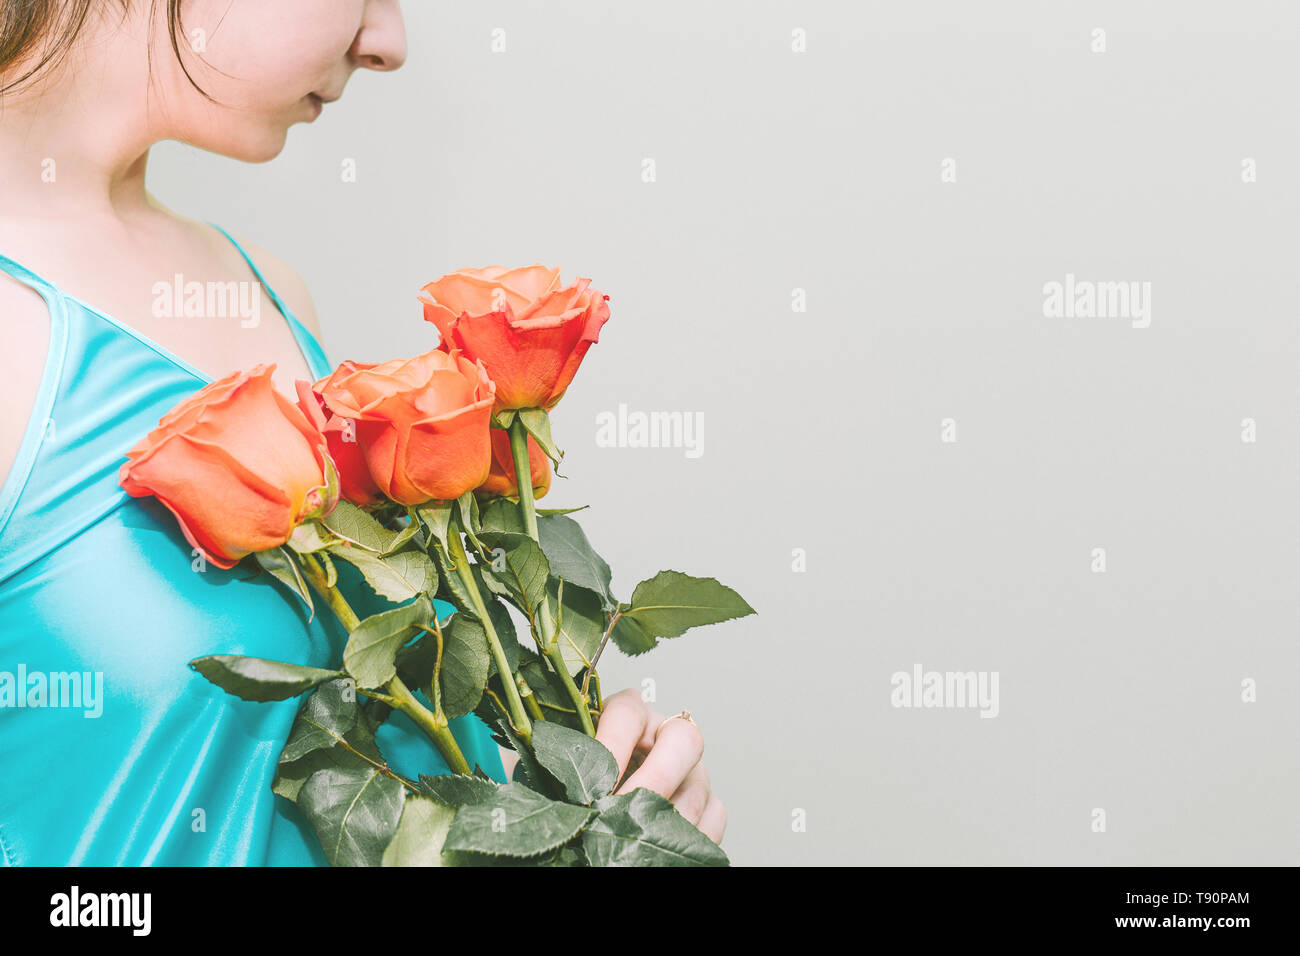 A young girl holds orange roses in her hands. A bouquet of bright flowers. On a beautiful girl wearing a turquoise shirt. Empty space for text - Stock Image